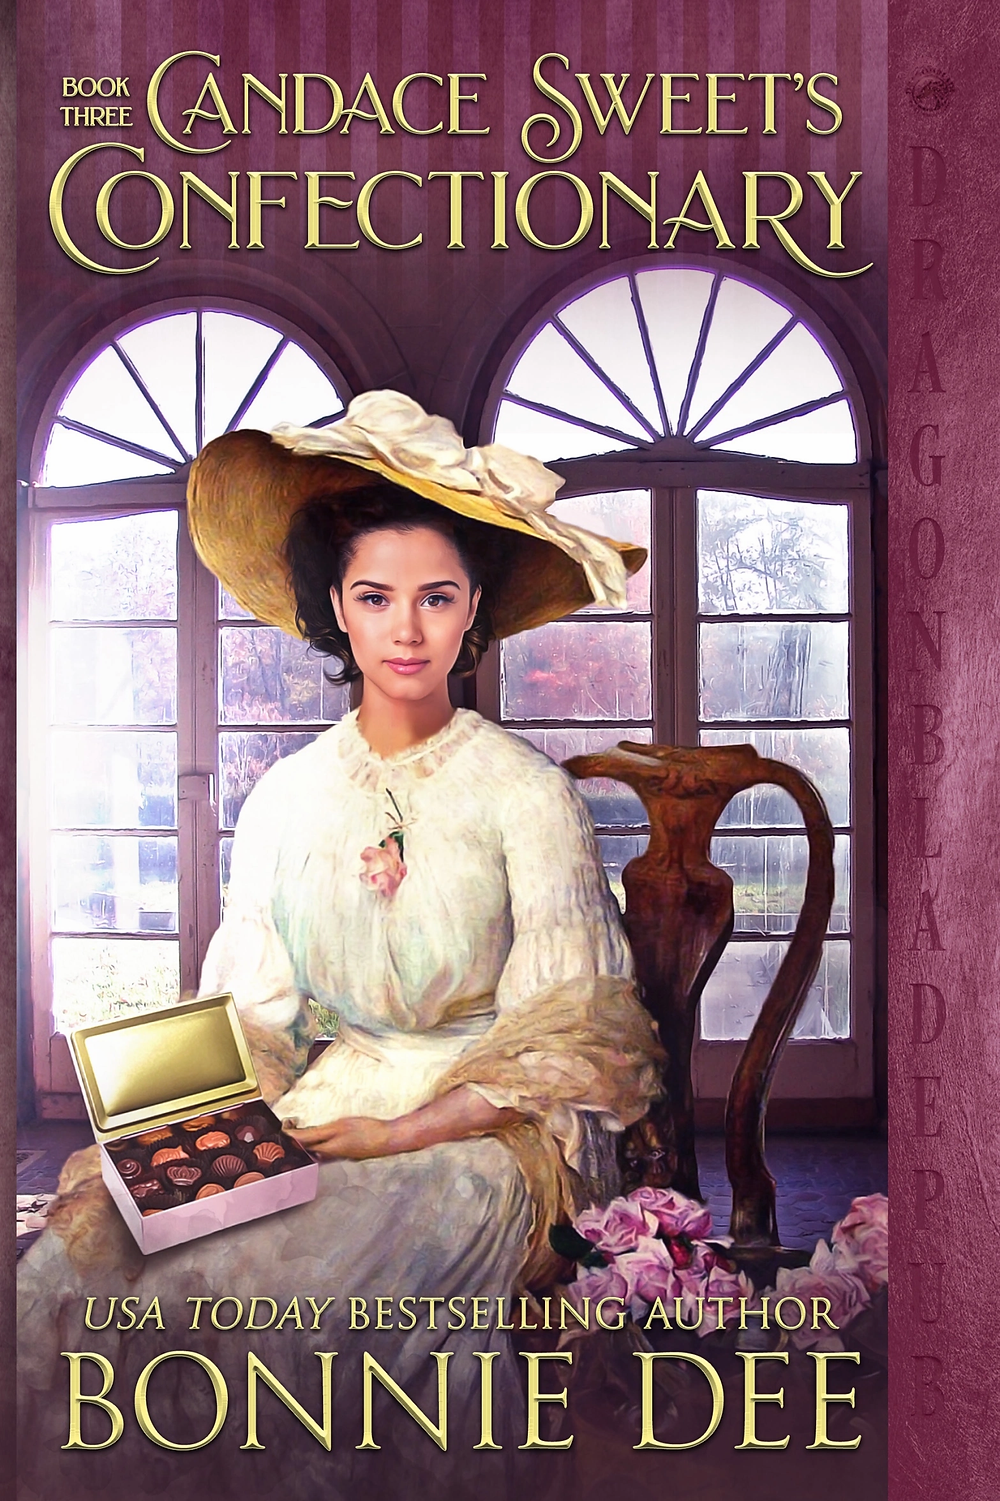 CANDACE SWEET'S CONFECTIONARY by Bonnie Dee